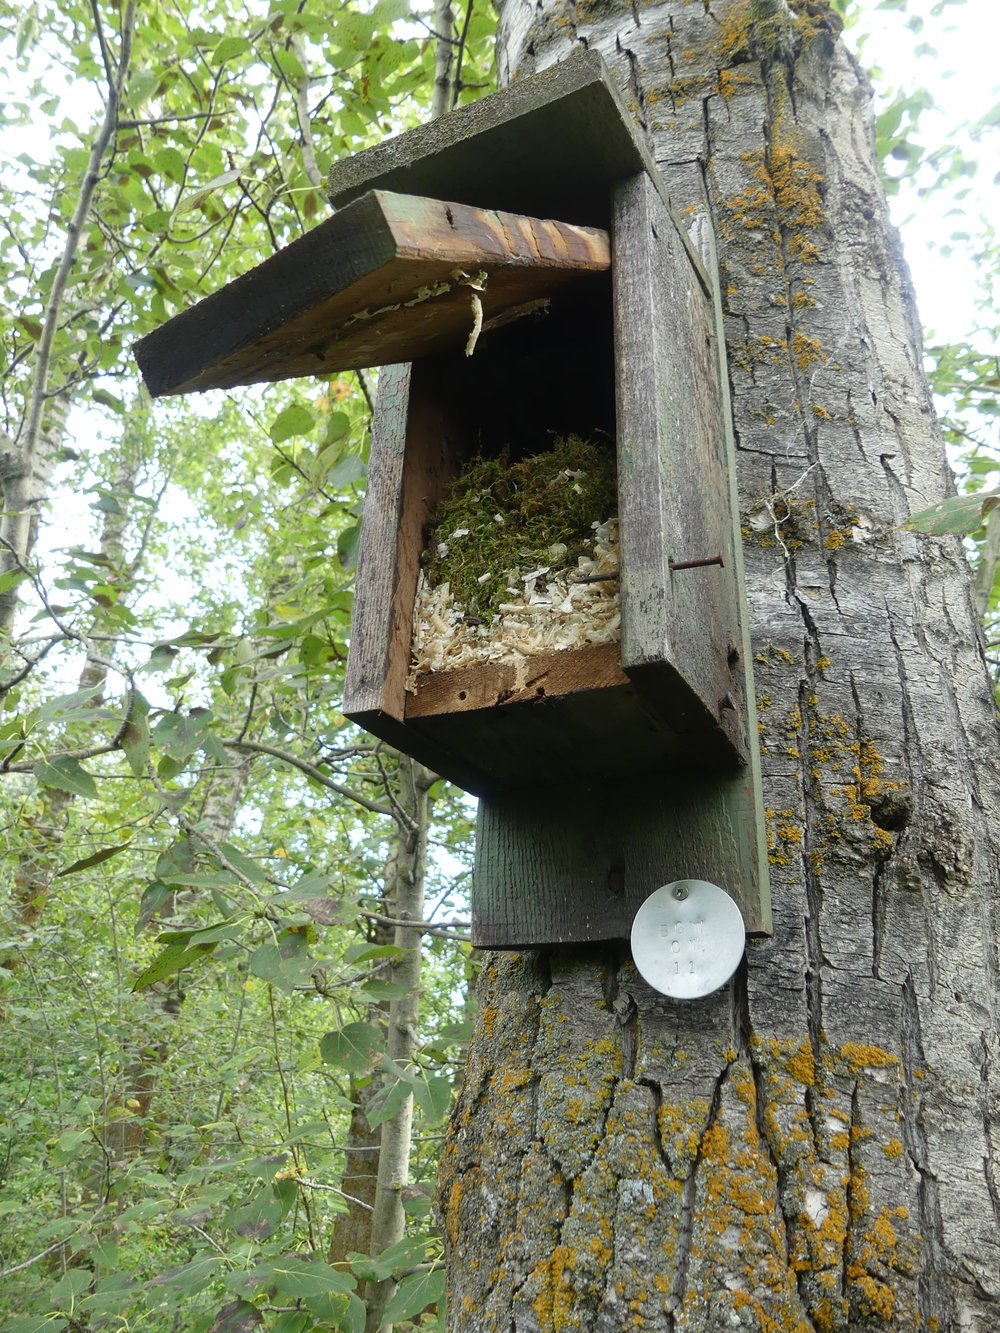 A Black-capped Chickadee nest at Boisvert's Greenwoods